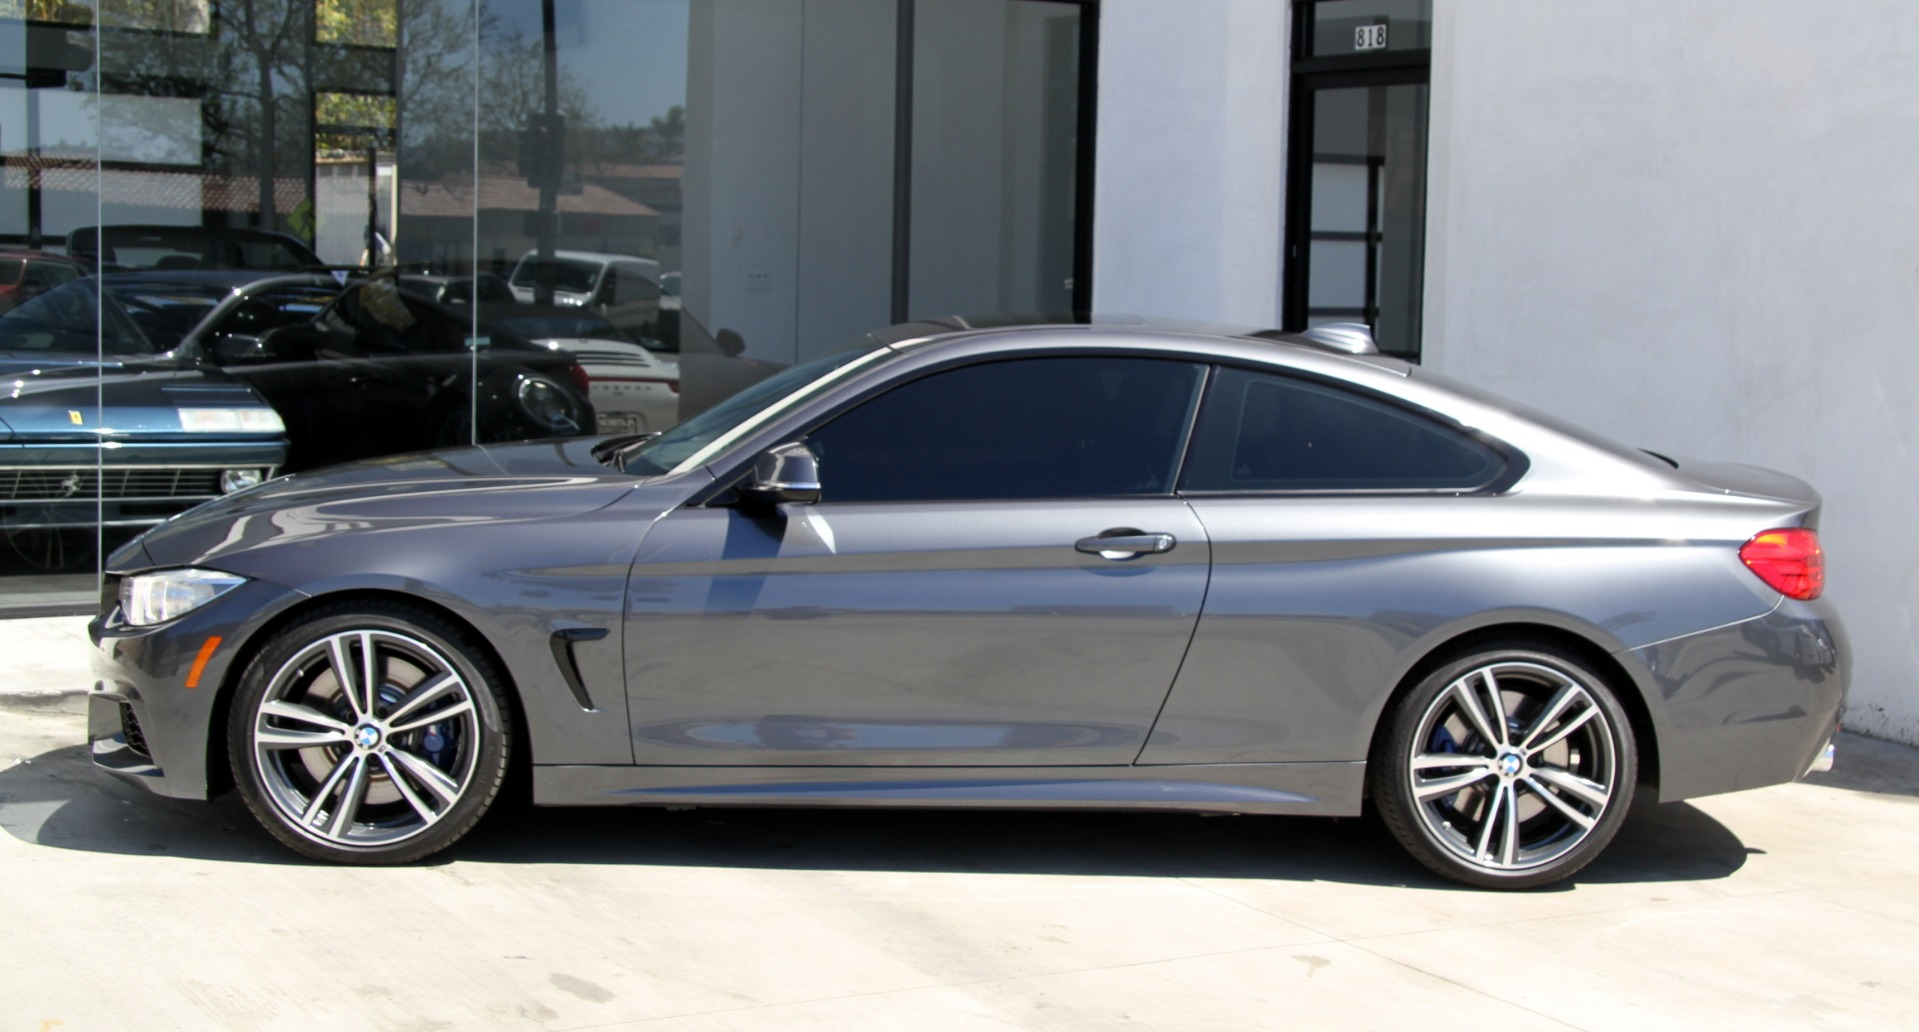 Bmw Dealership Near Me >> 2015 BMW 4 Series 435i *** M SPORT PACKAGE *** Stock # 6137 for sale near Redondo Beach, CA | CA ...